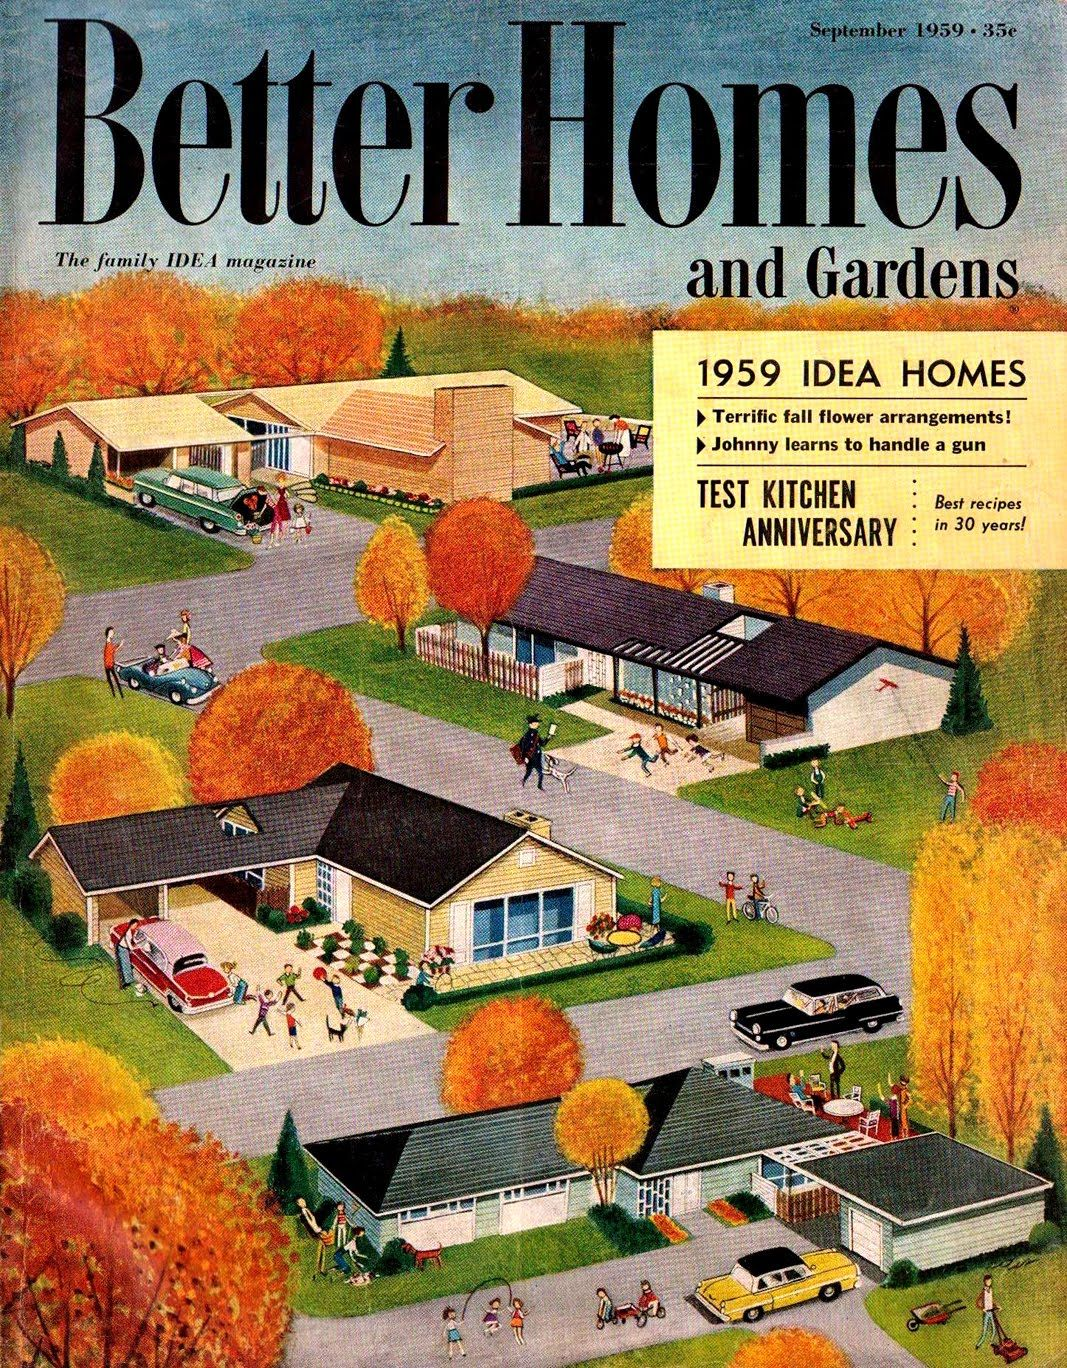 afd996dfb11c0b2f32f673378efac720 - Better Homes And Gardens Agent Login